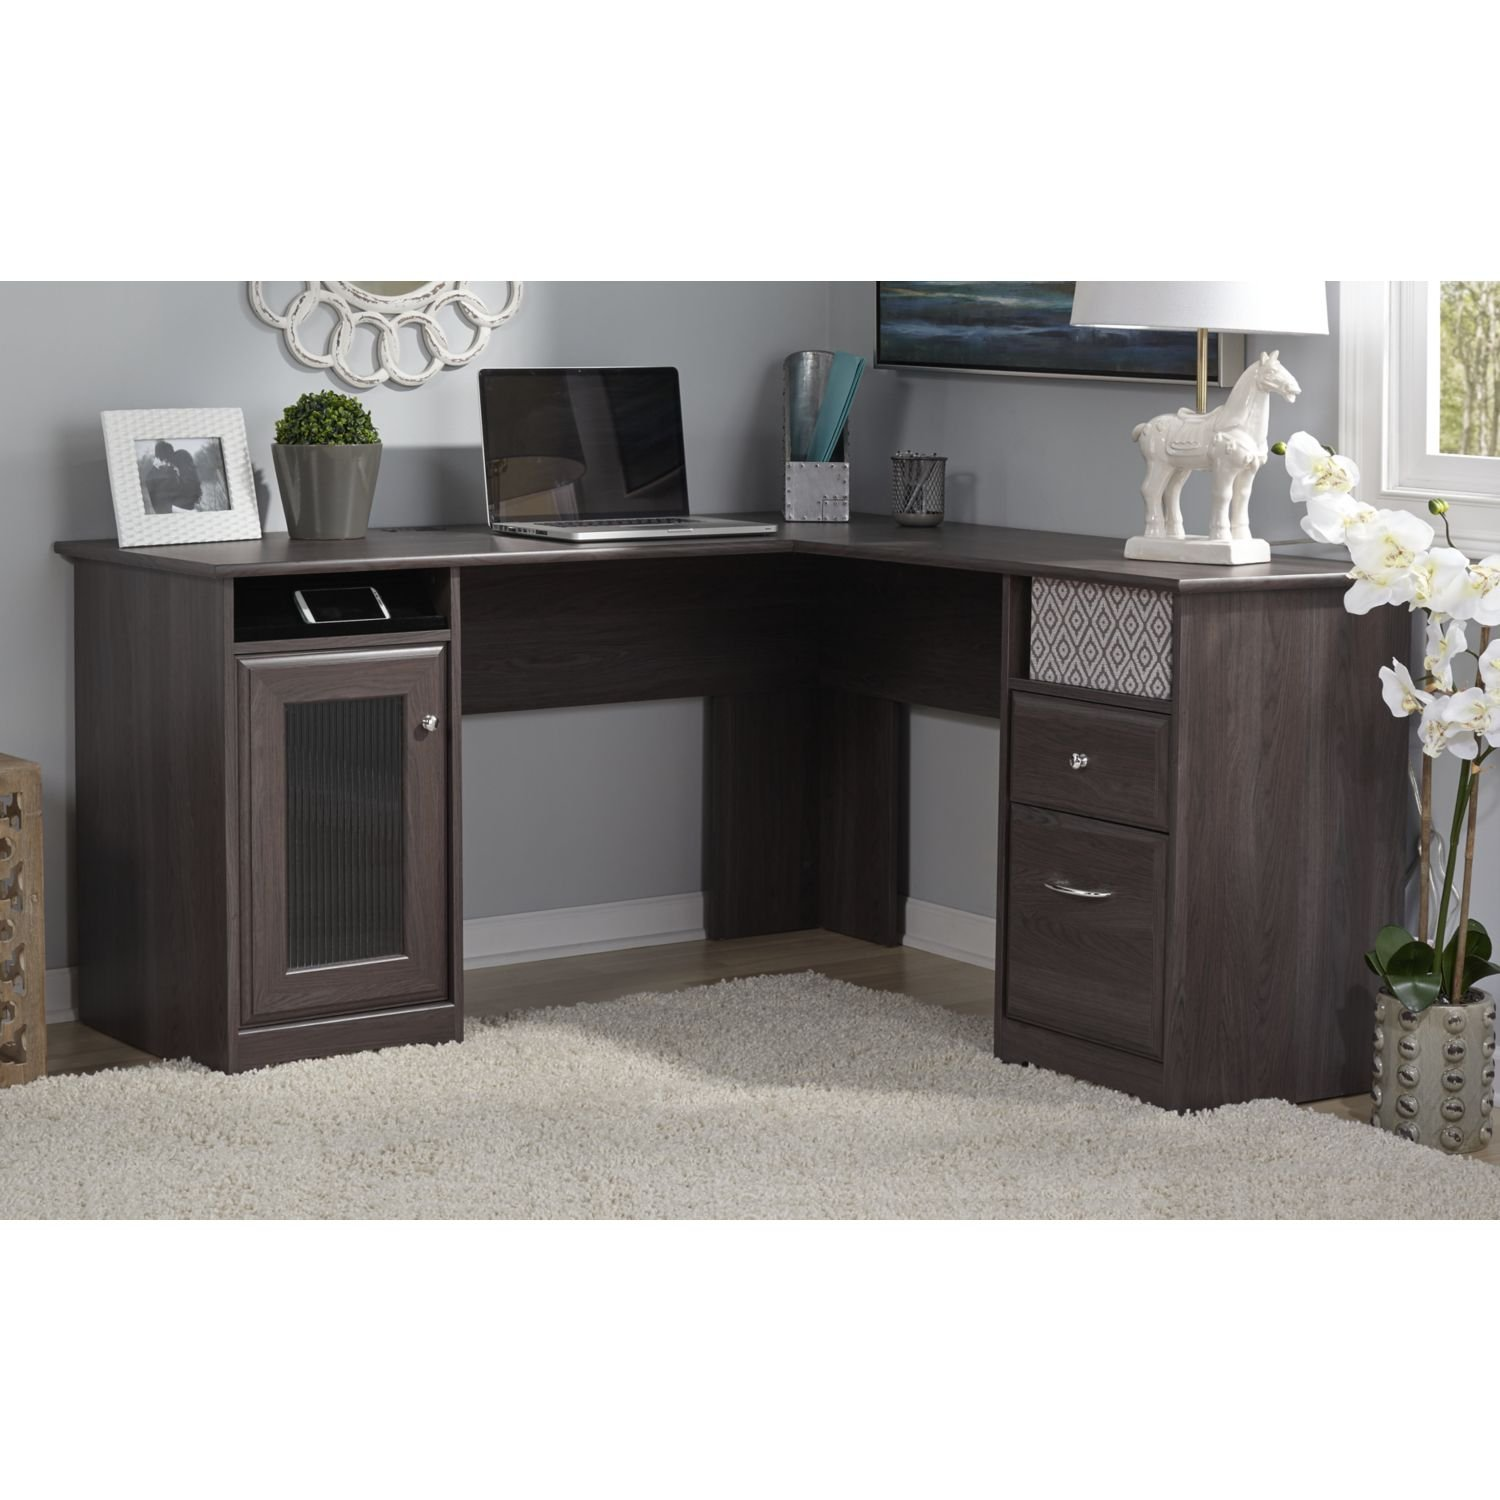 amazoncom bush furniture cabot collection 60w l desk in heather gray kitchen dining bush home office furniture